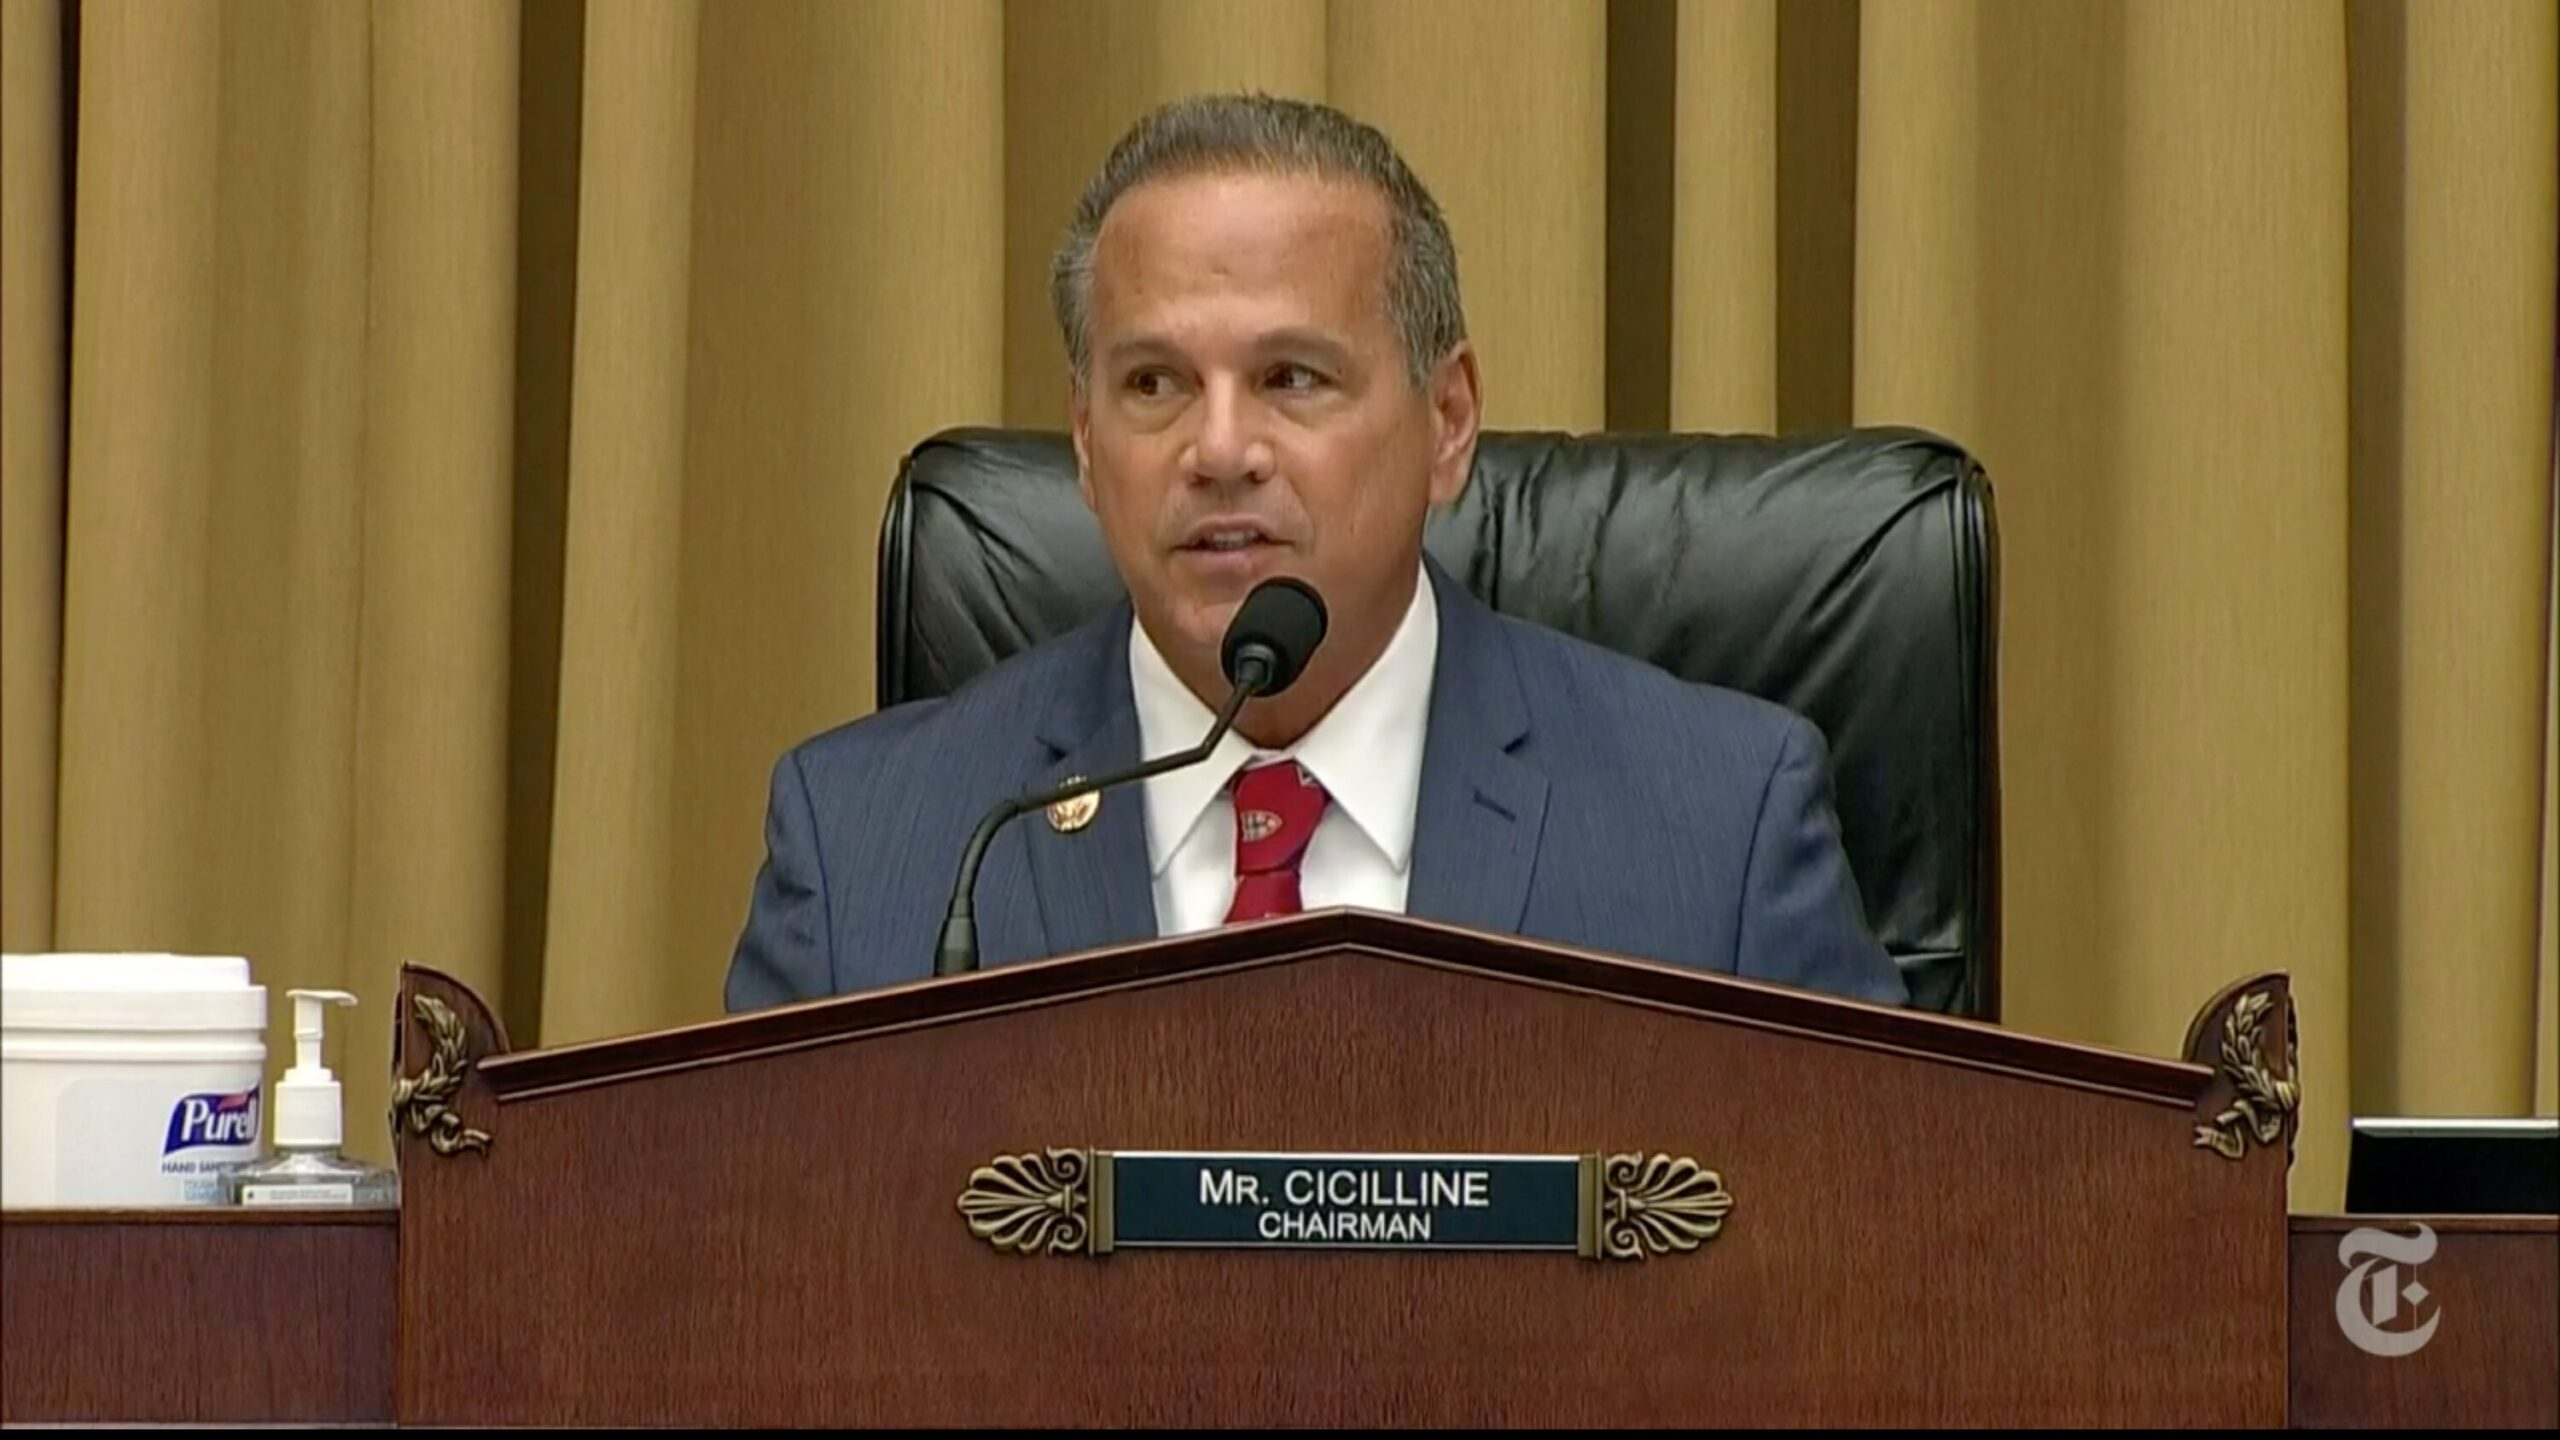 Chairperson Cicilline during the House Judiciary Subcommittee on Antitrust, Commercial and Administrative Law, at Capitol Hill in Washington DC.||MANDEL NGAN/AFP/BLOOMBERG/GETTY IMAGES